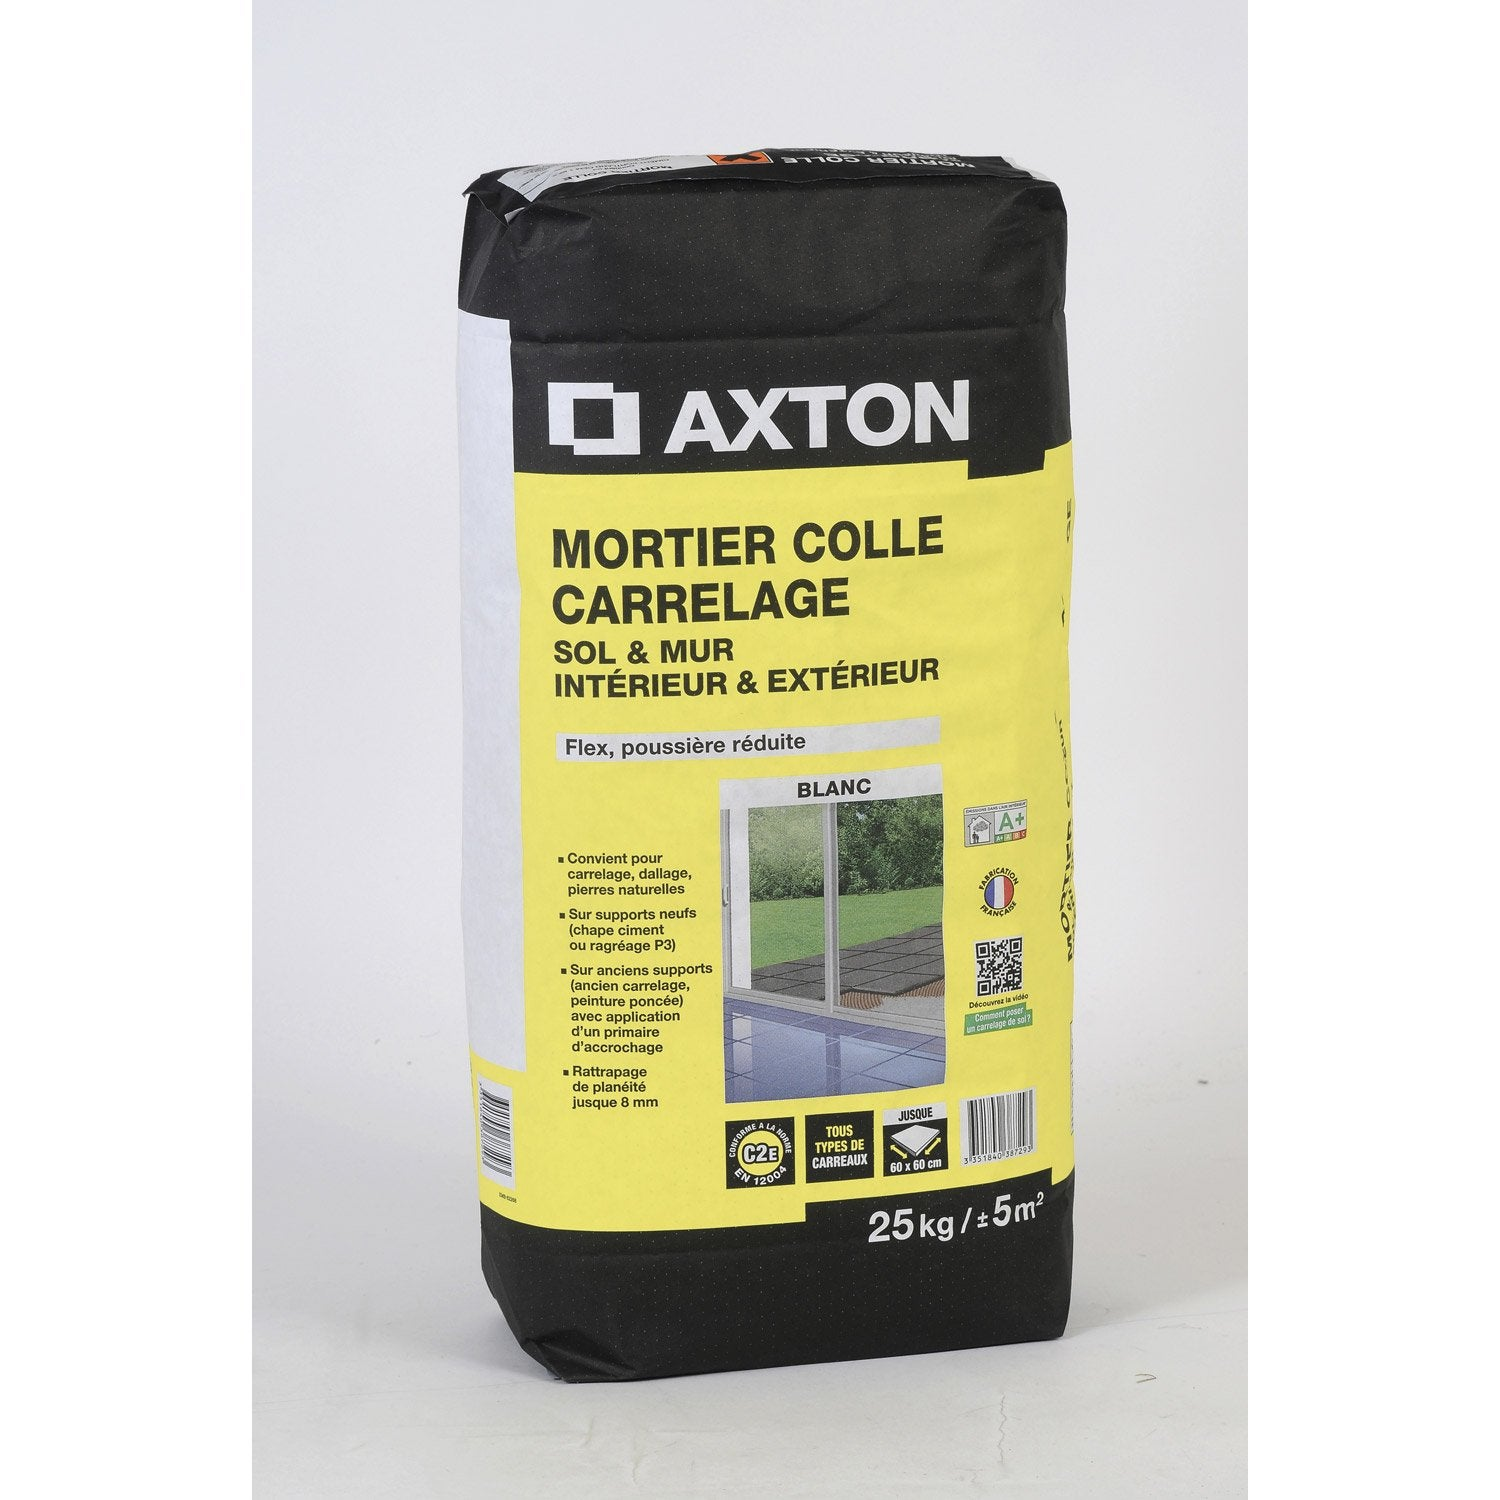 Mortier colle sans poussi re axton 25 kg leroy merlin for Colle carrelage exterieur leroy merlin